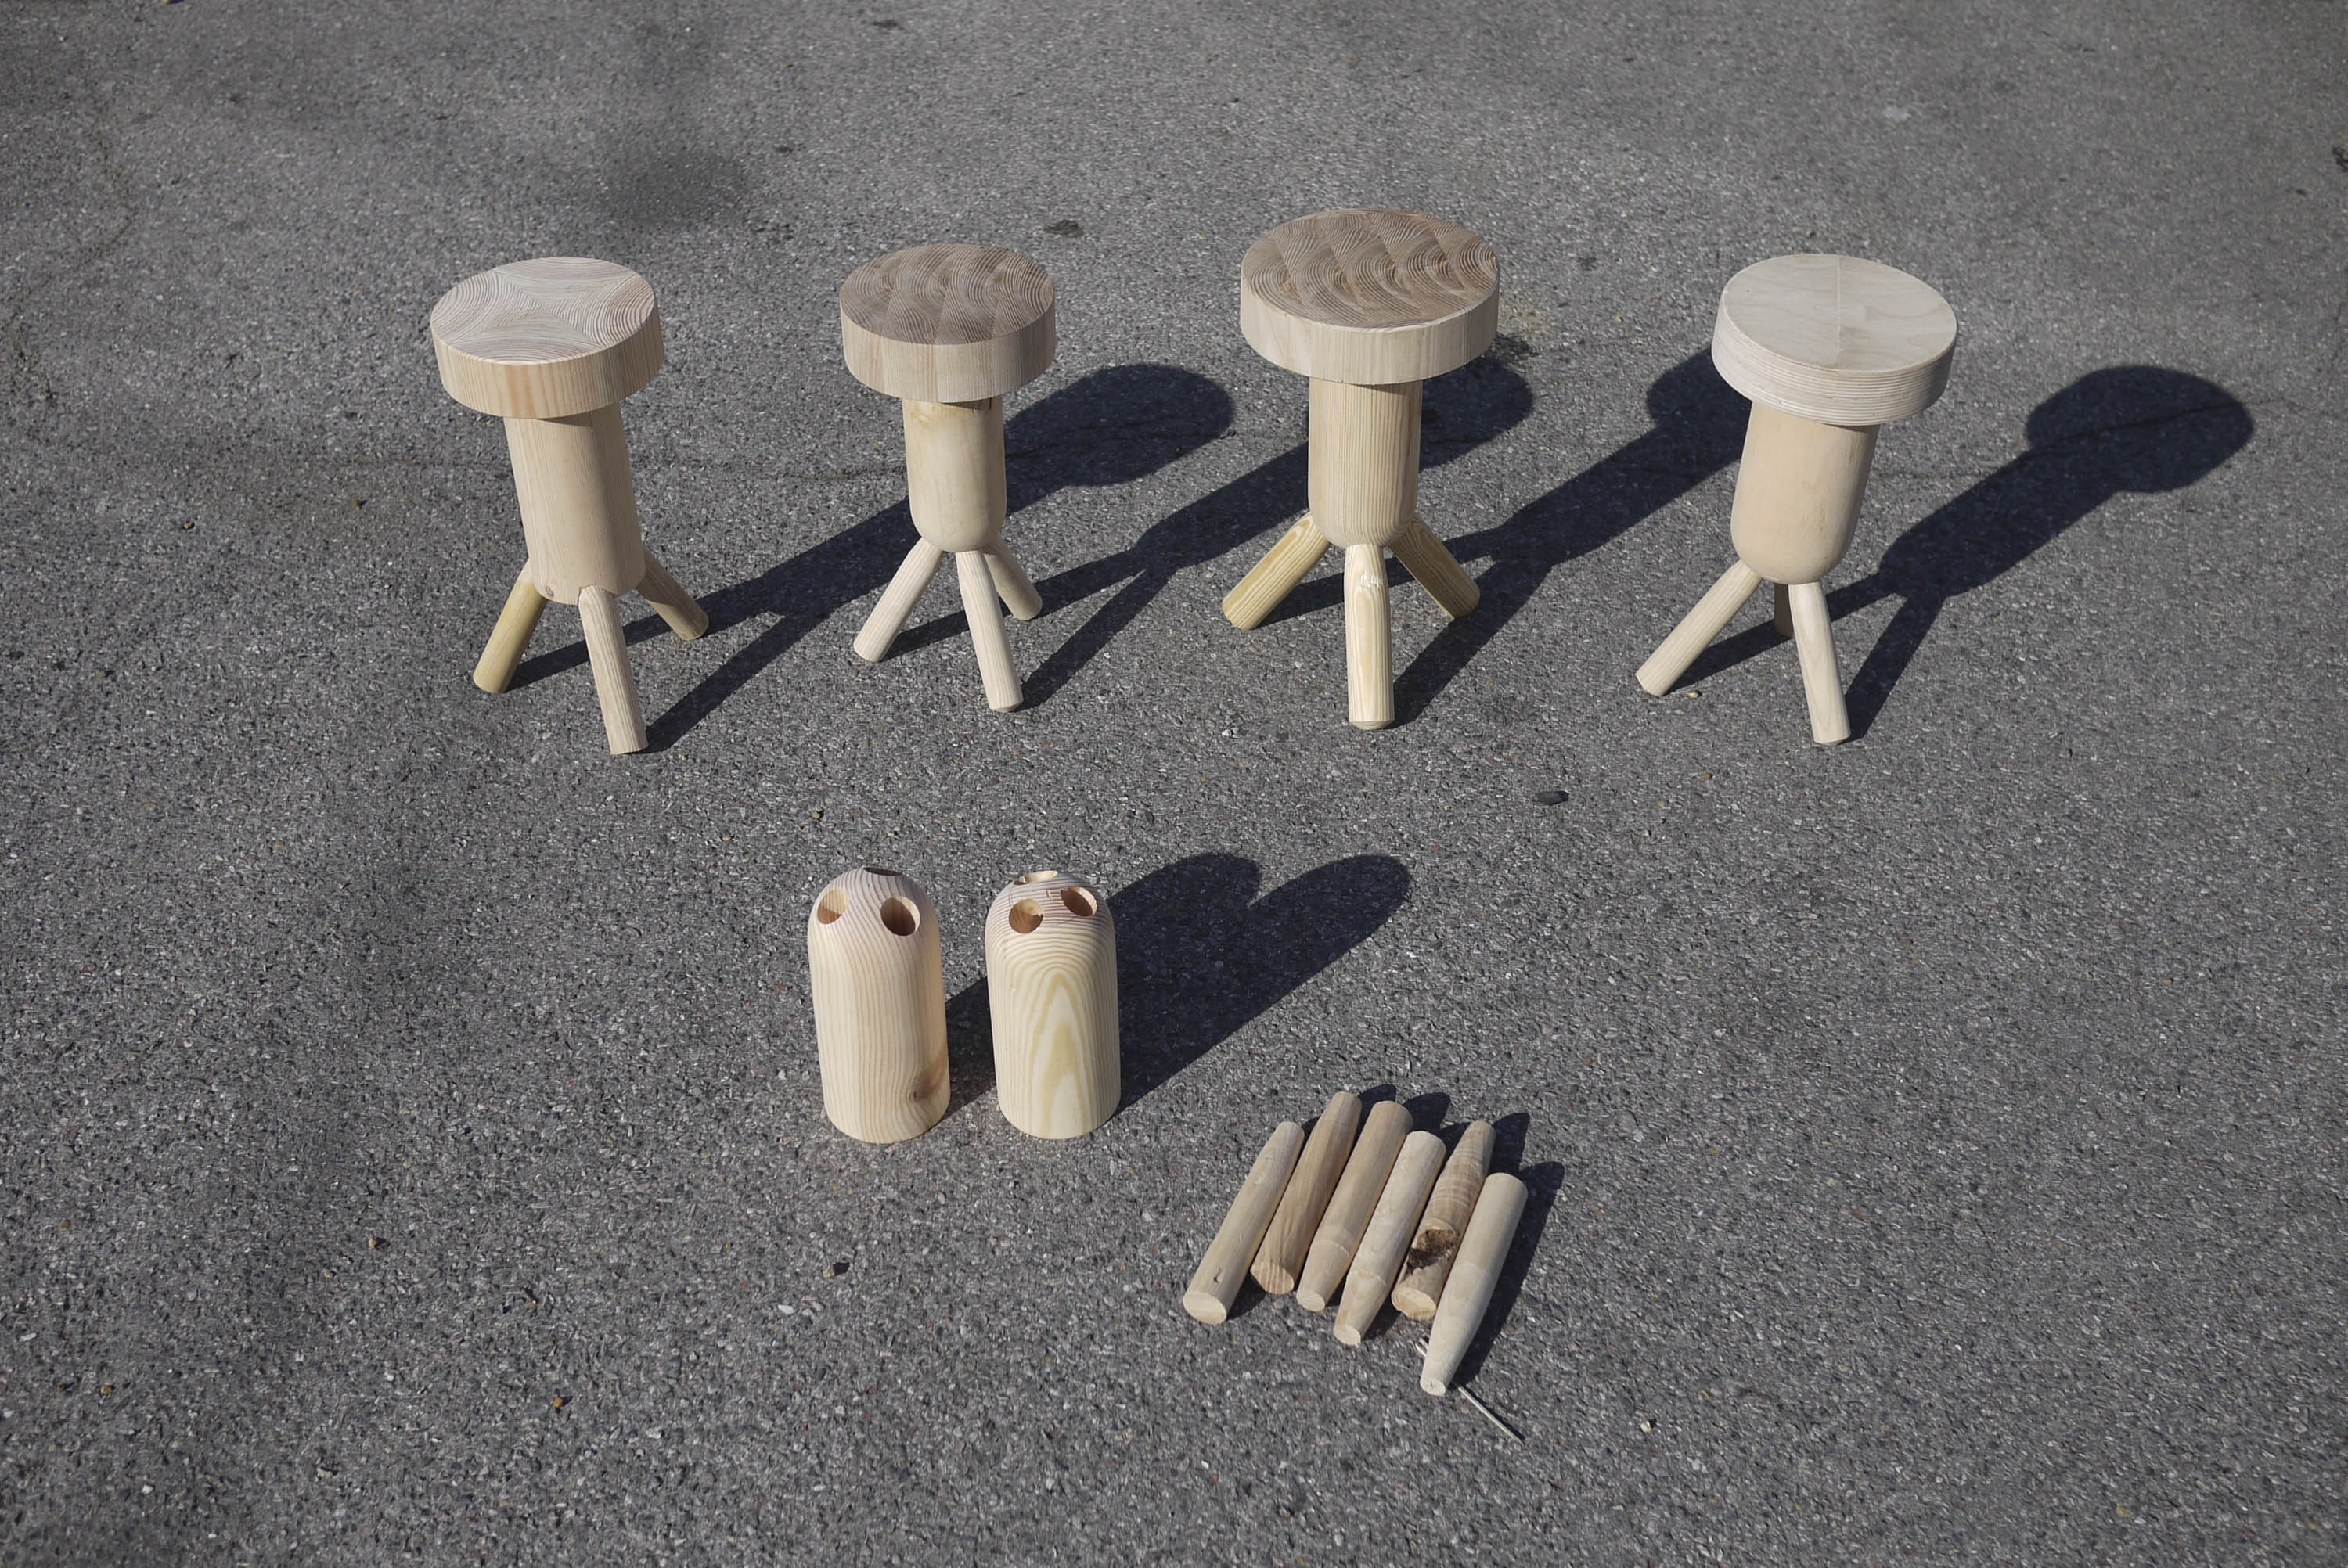 A photo of prototypes for small wooden stools designed by Max Lamb. The pieces of the prototypes are laid out on concrete in bright sunlight.